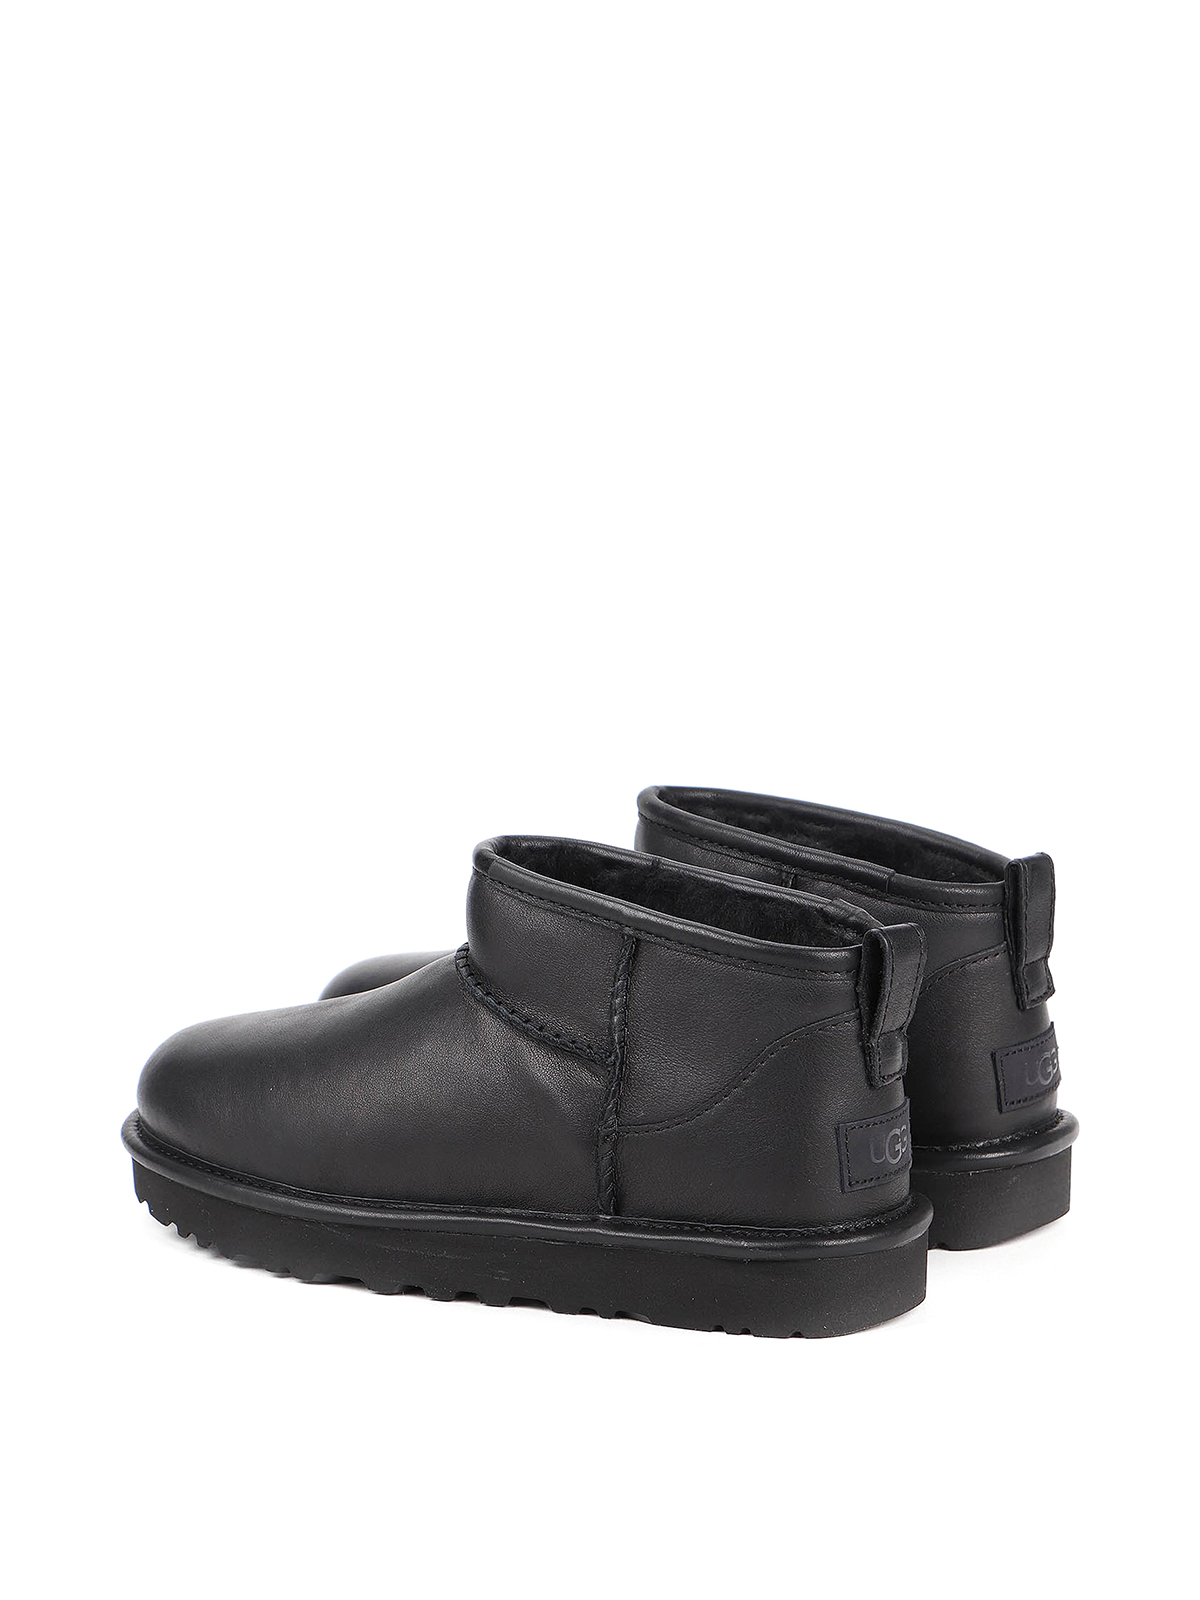 Ugg - Classic Ultra Mini ankle boots